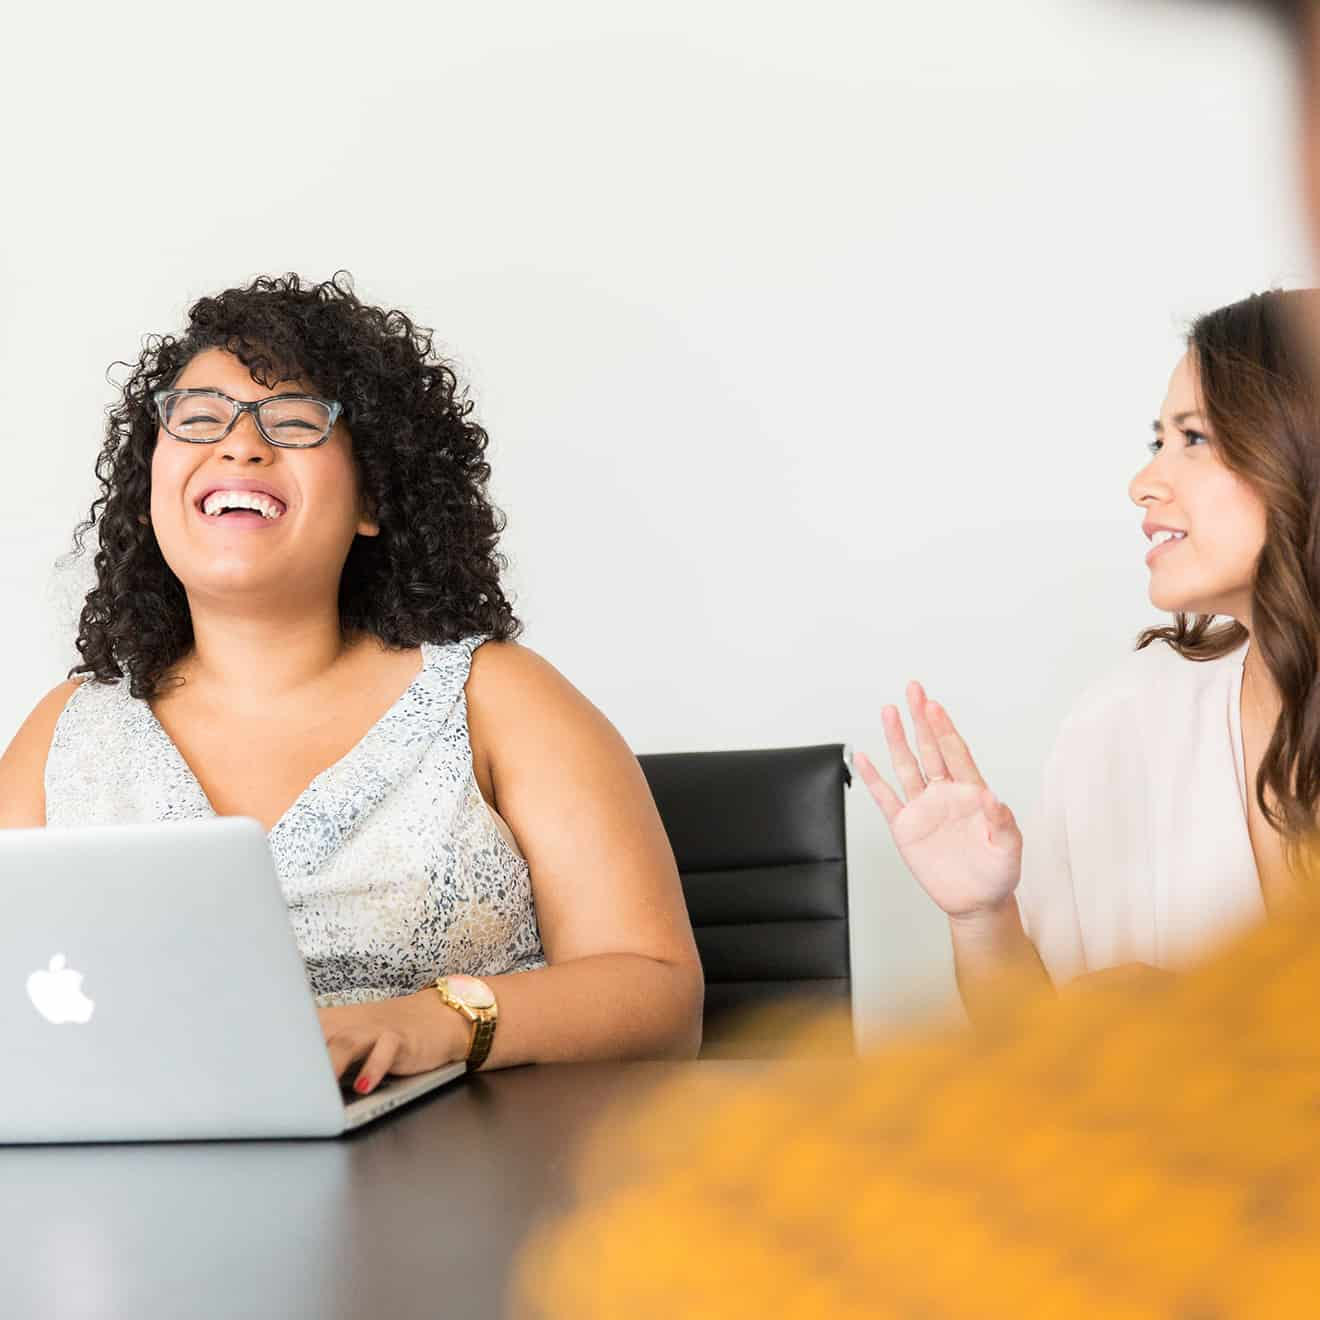 5 Ways to Instantly Improve Your Company Culture